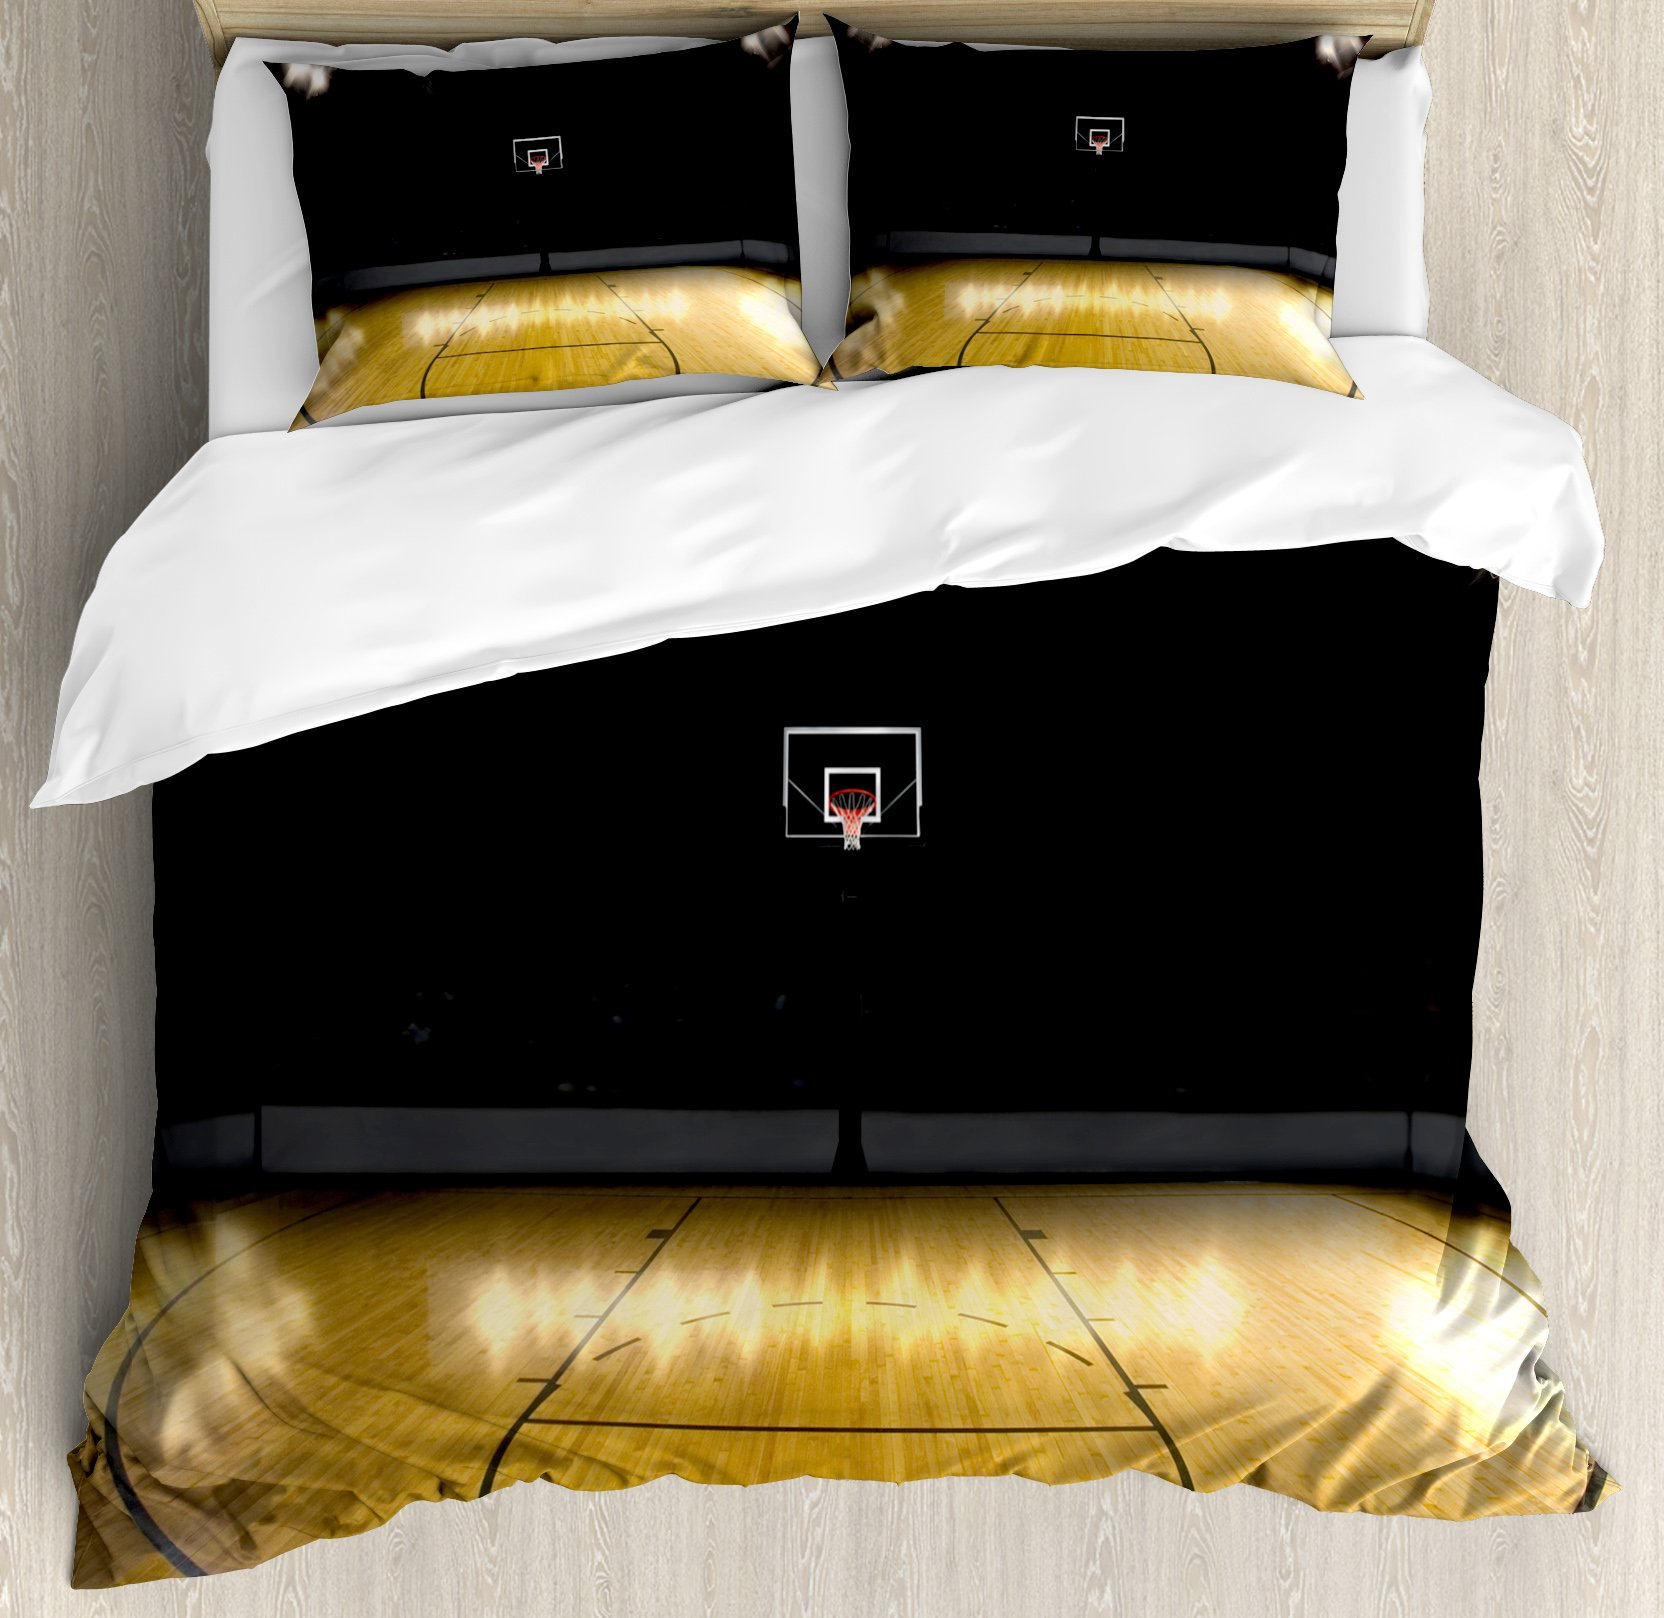 Teen Room Decor Duvet Cover Set King Size by Ambesonne, Empty Basketball Arena Competition Game Win Champion Success Theme, Decorative 3 Piece Bedding Set with 2 Pillow Shams, Light Coffee Black